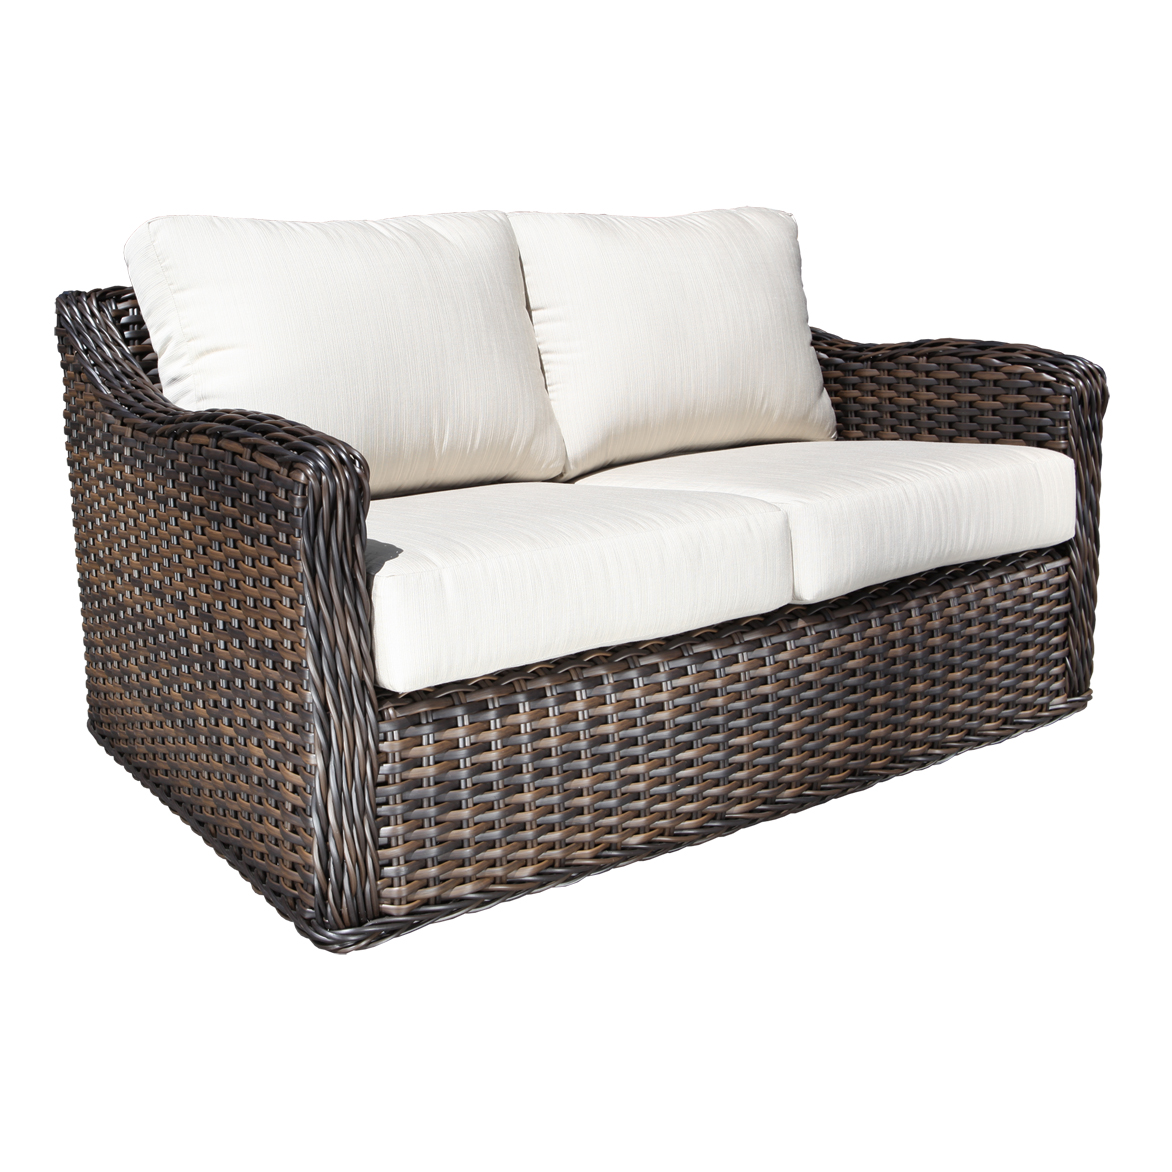 Patio Chairs Wicker Classic Wicker Patio Chairs Wicker Patio Chairs Design